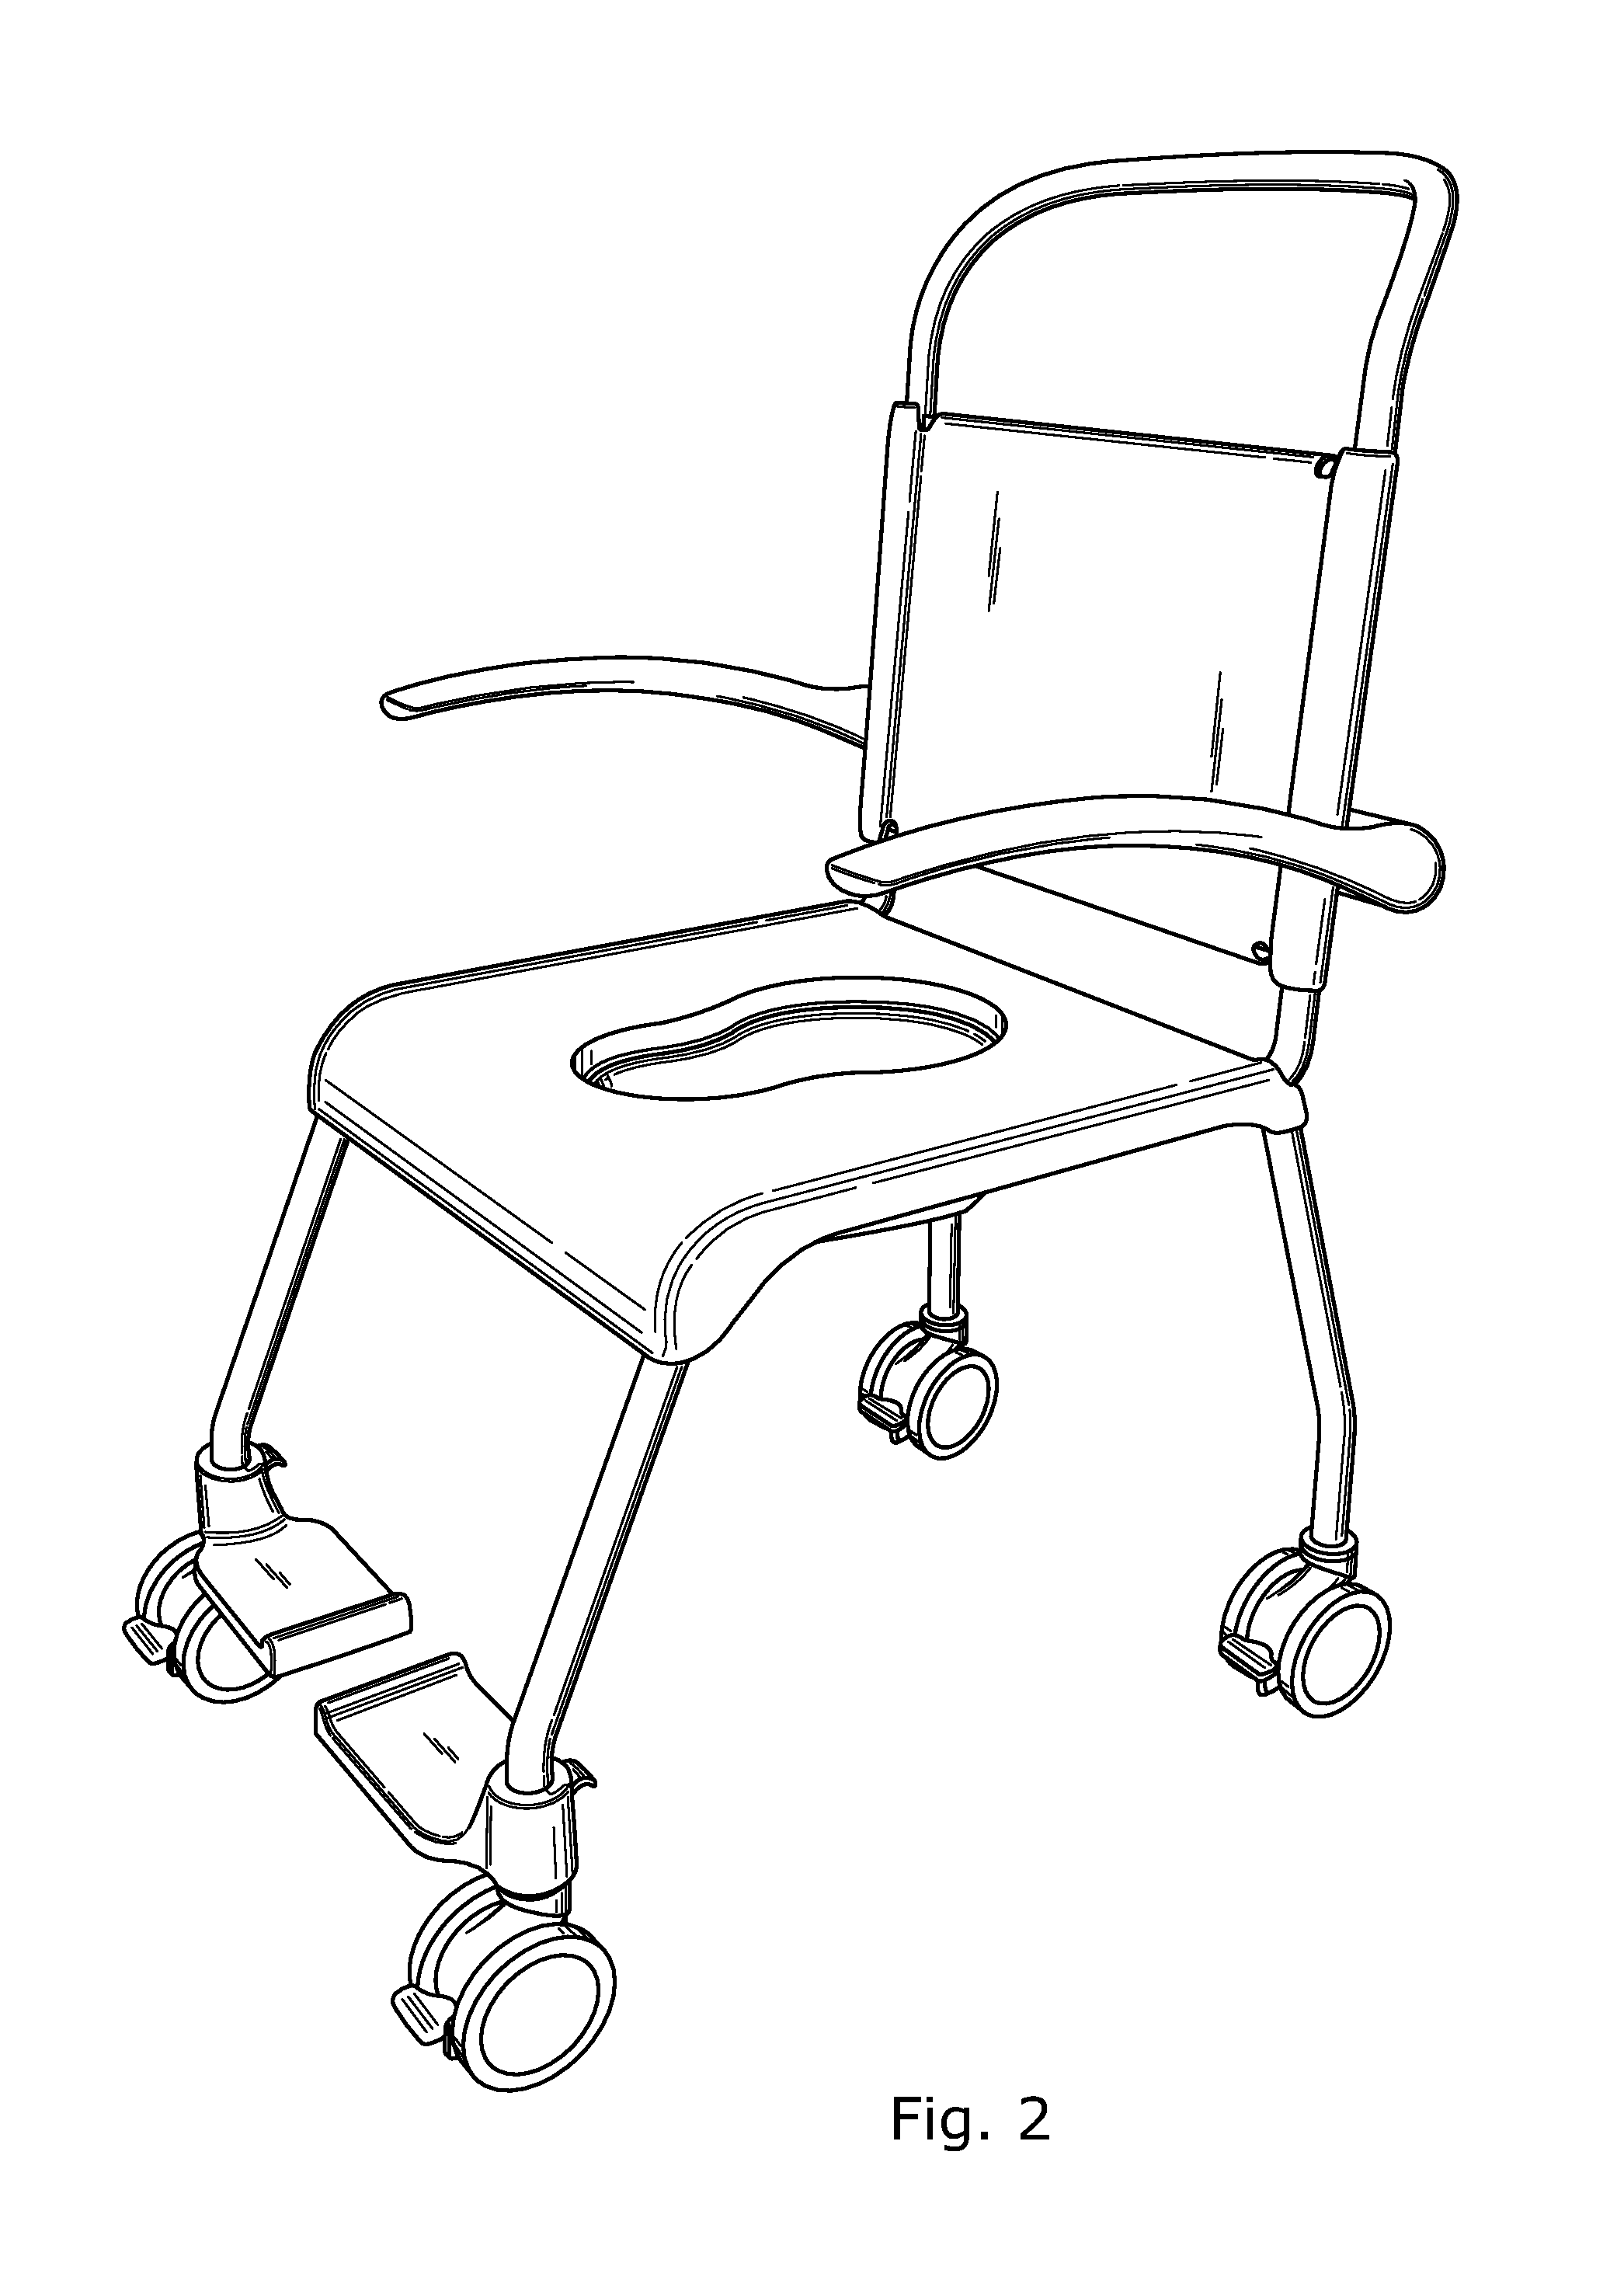 Patent USD mode chair Google Patents